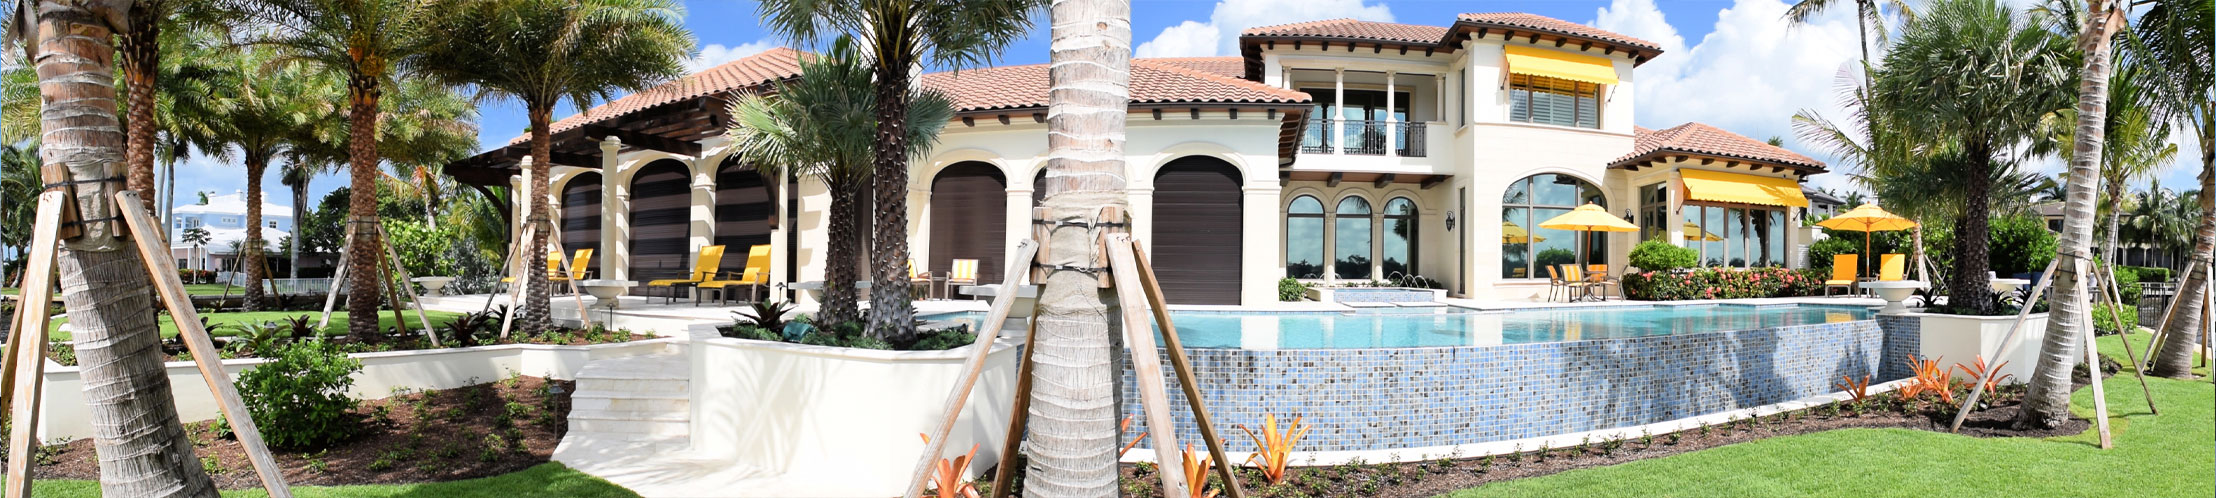 Home With Pool and Yellow Accents | Precast Keystone - Naples, Florida